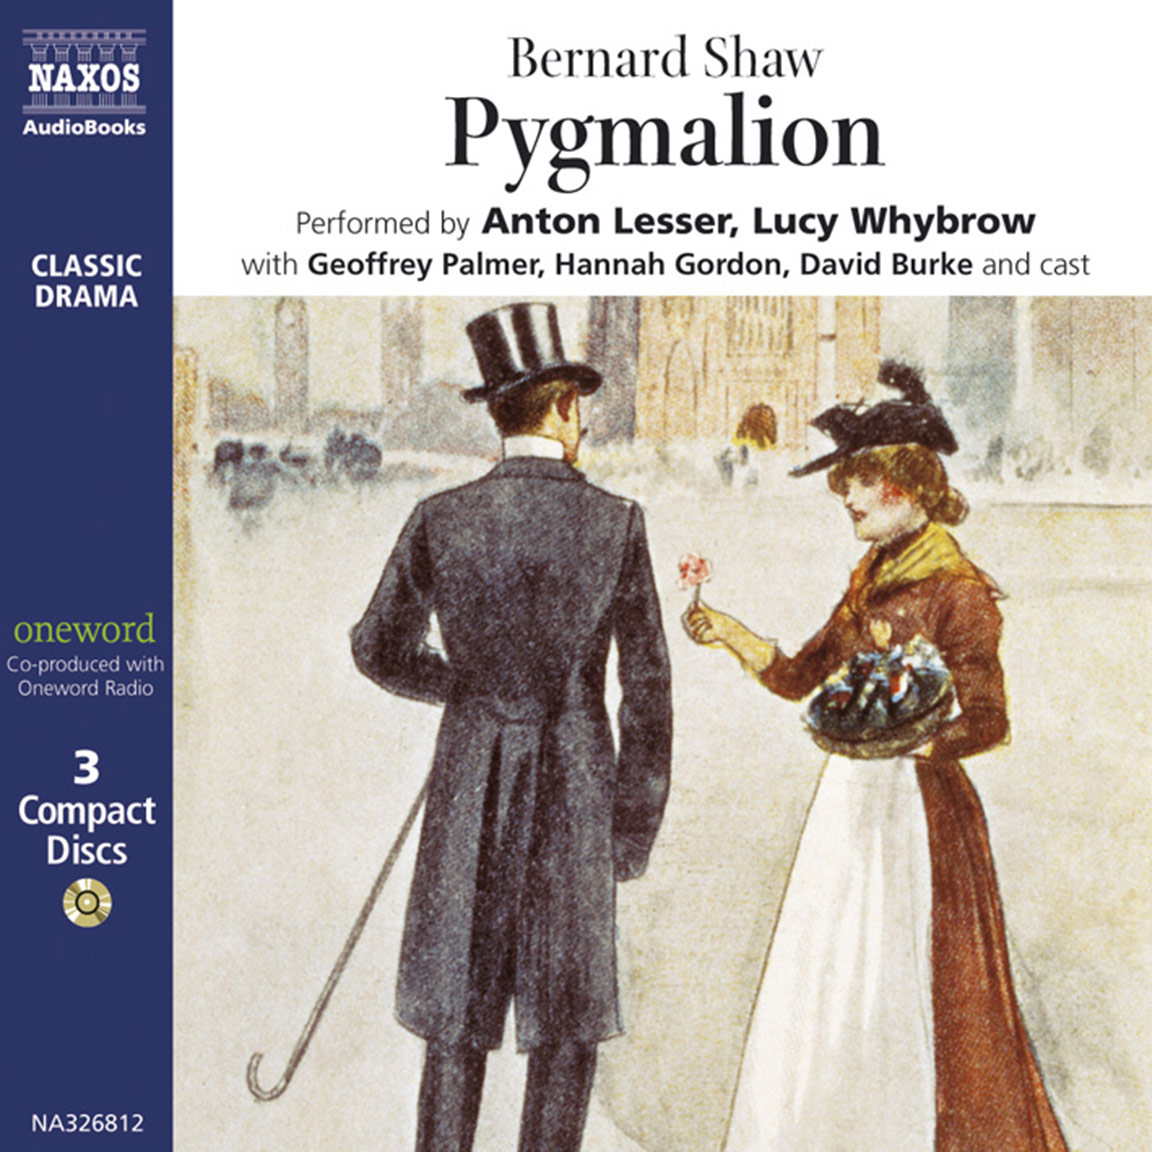 pygmalion professor higgins philosophy Expository essays term papers (paper 4589) on pygmalion: higgins' philosophy professor higgins is seen throughout pygmalion as a very rude man while one may expect a well educated man.